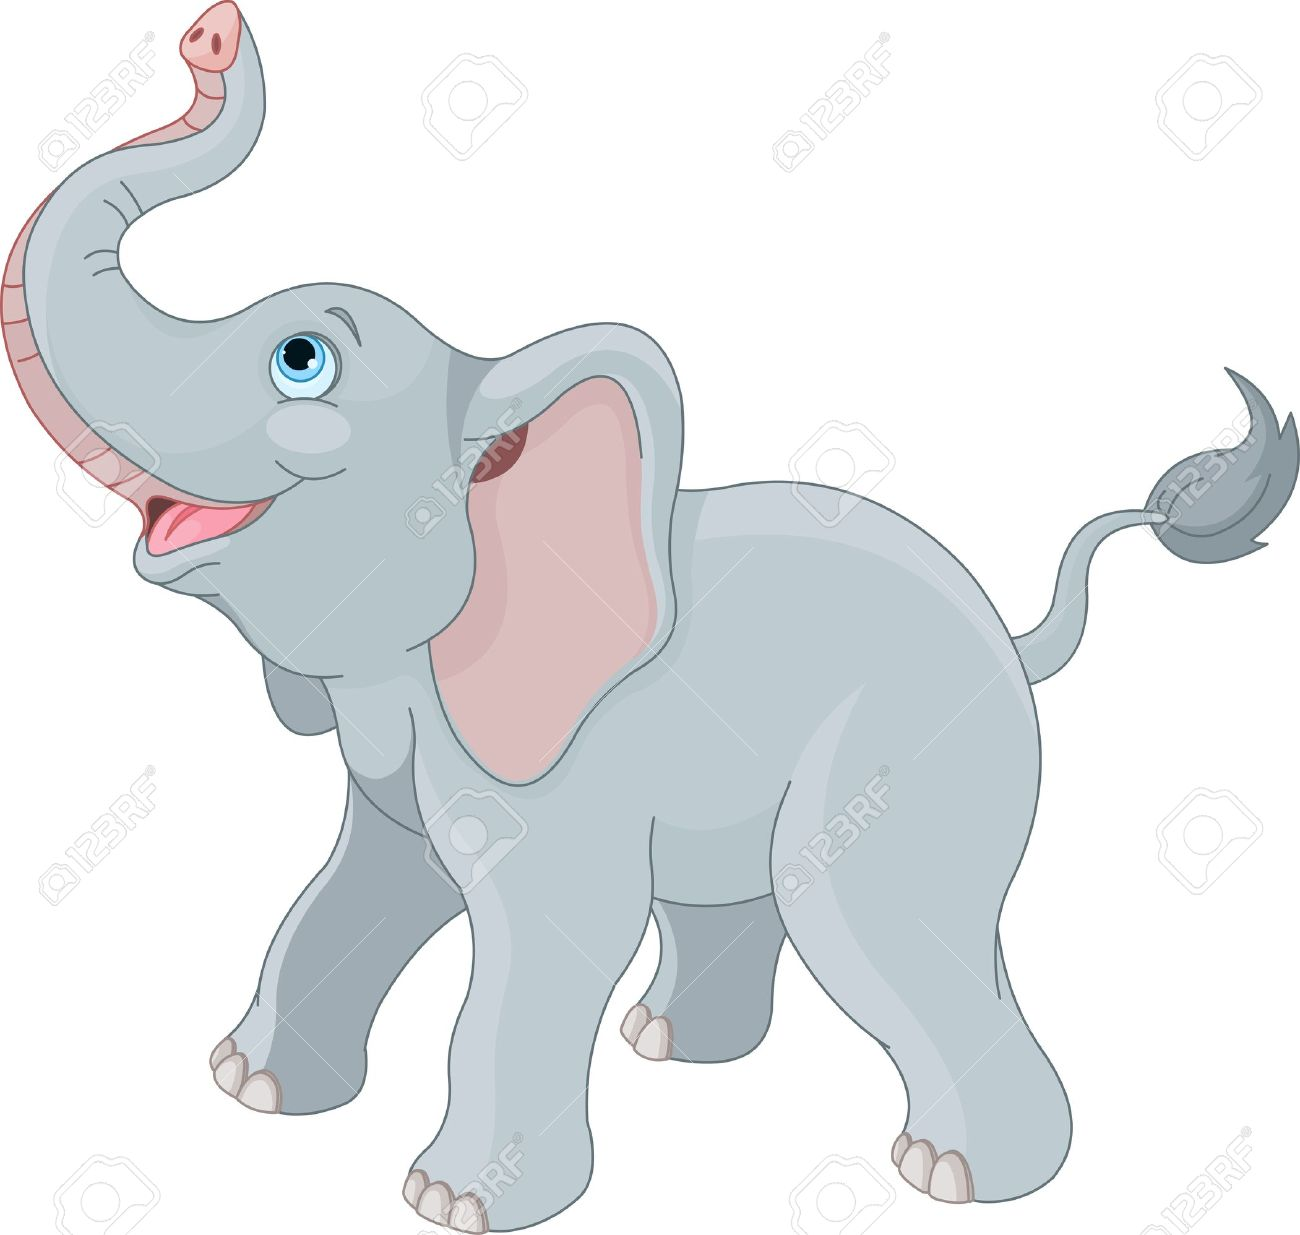 Elephant trunk clipart 6 » Clipart Station.